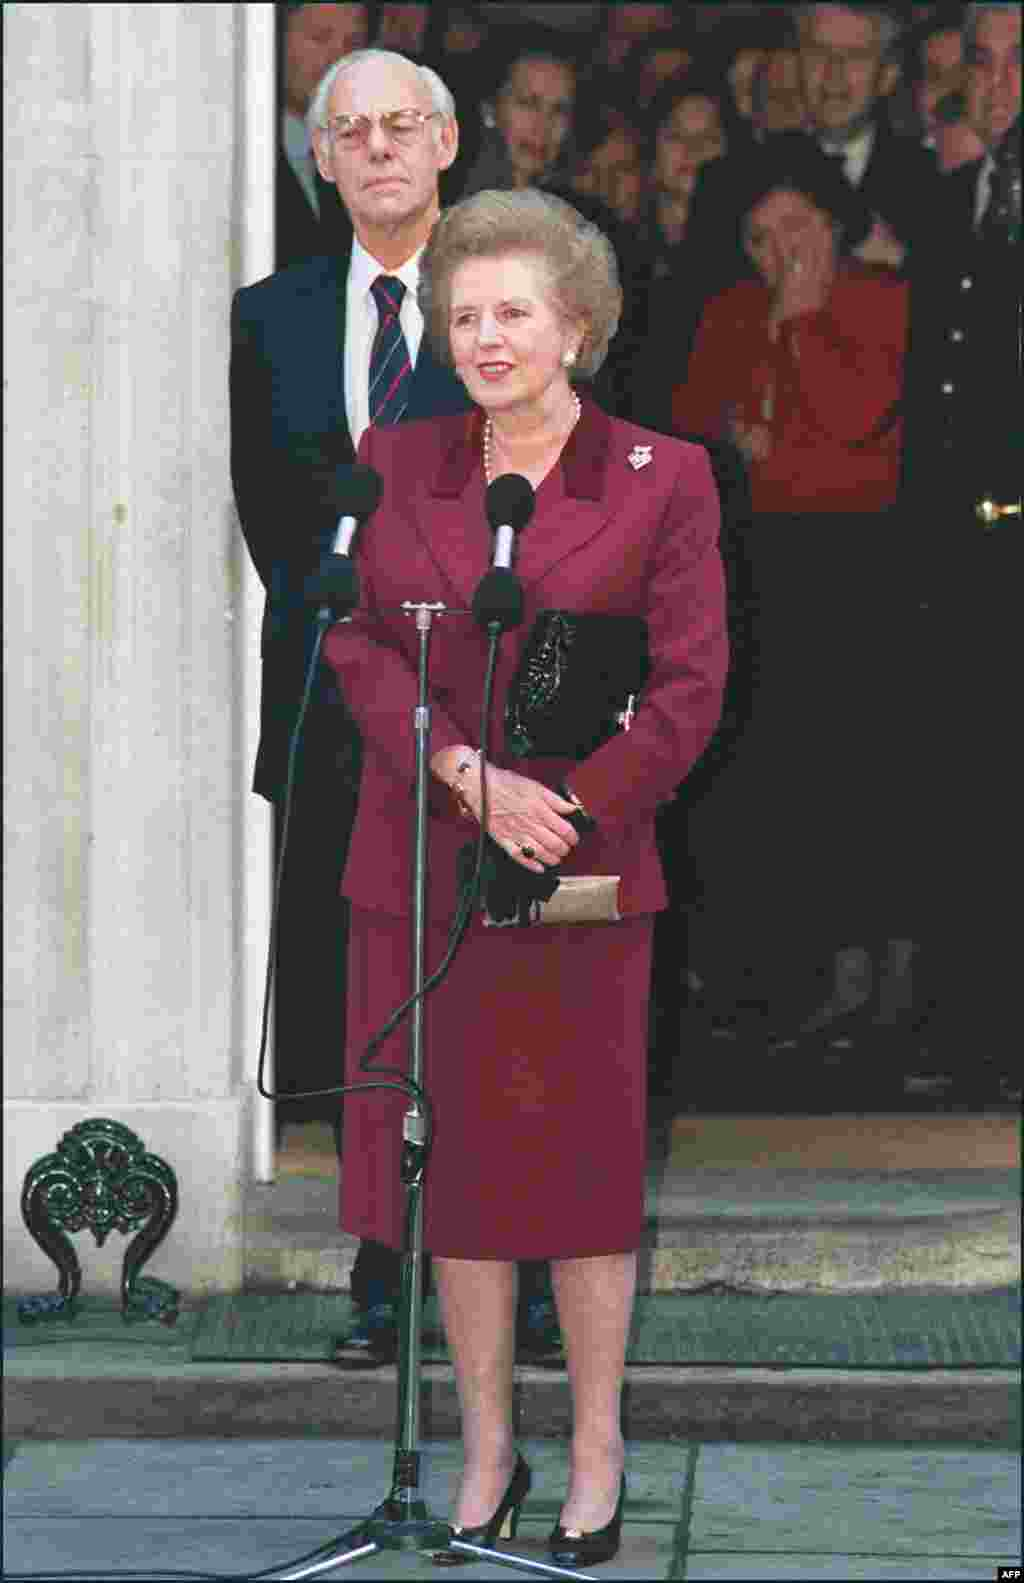 Margaret Thatcher, flanked by her husband, Denis, addresses the press for the last time in front of 10 Downing Street in London in November 1990.